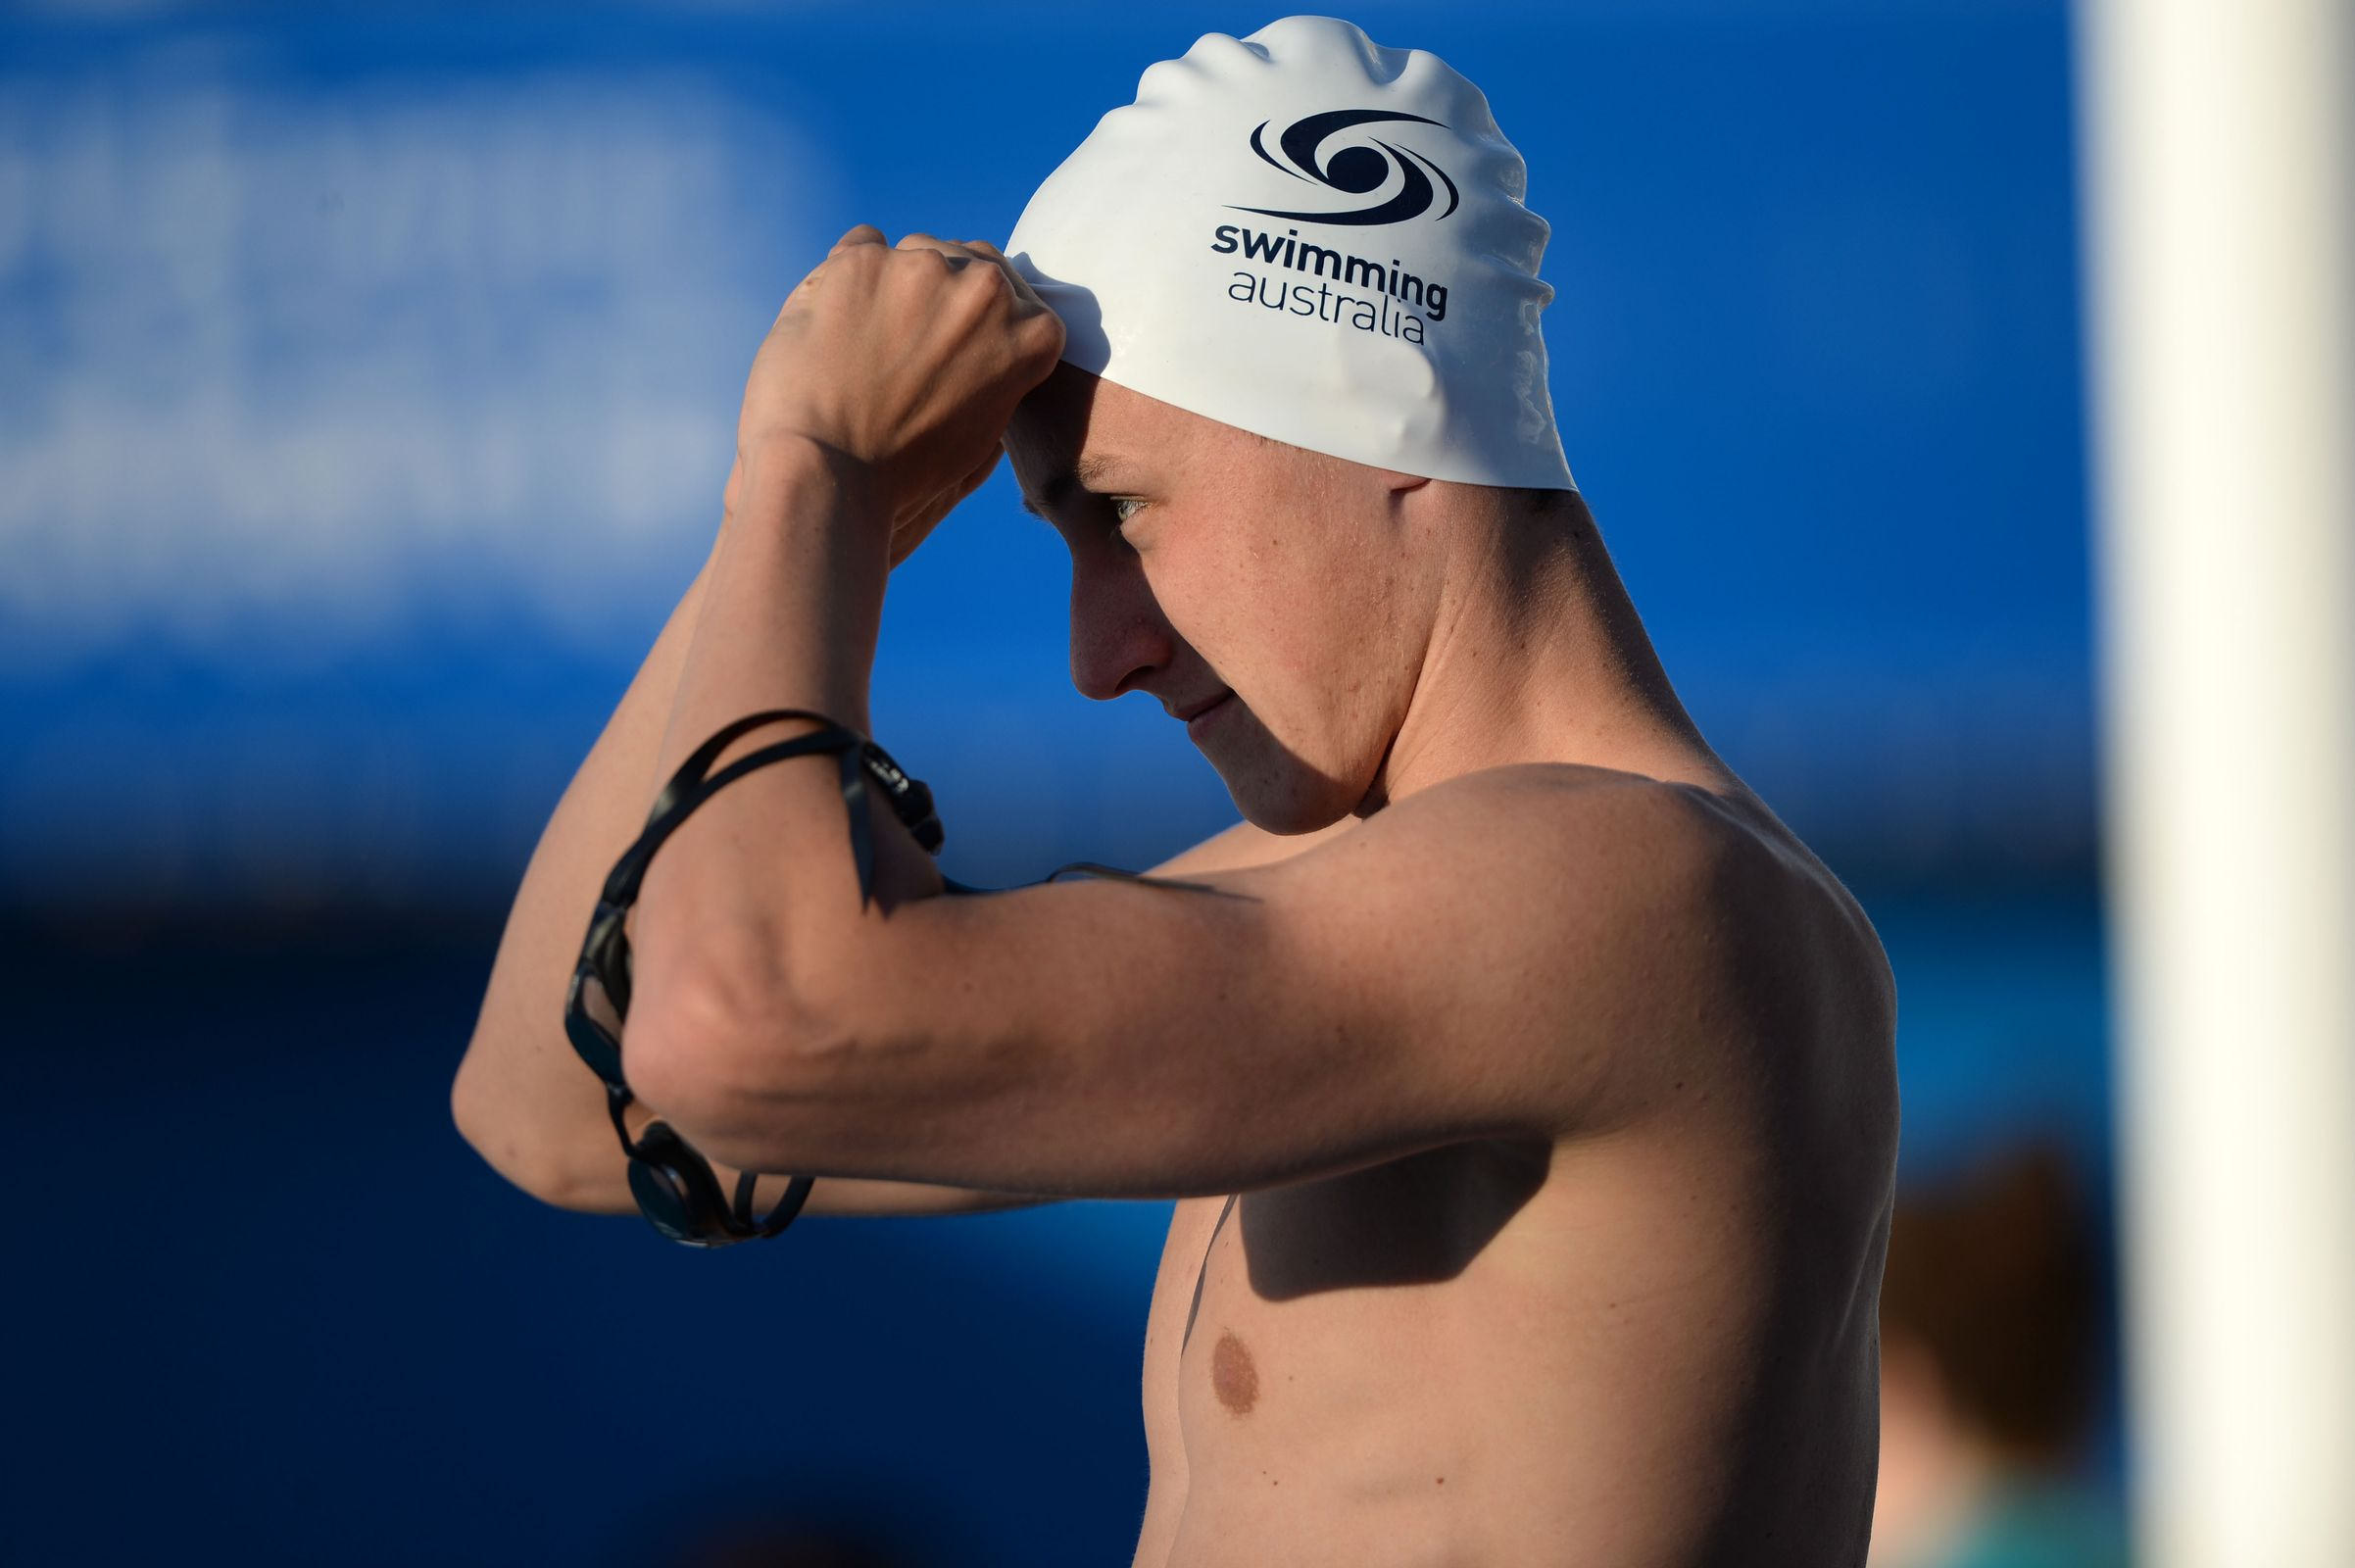 Pan pacific championships results cameron mcevoy - Dive recorder results ...